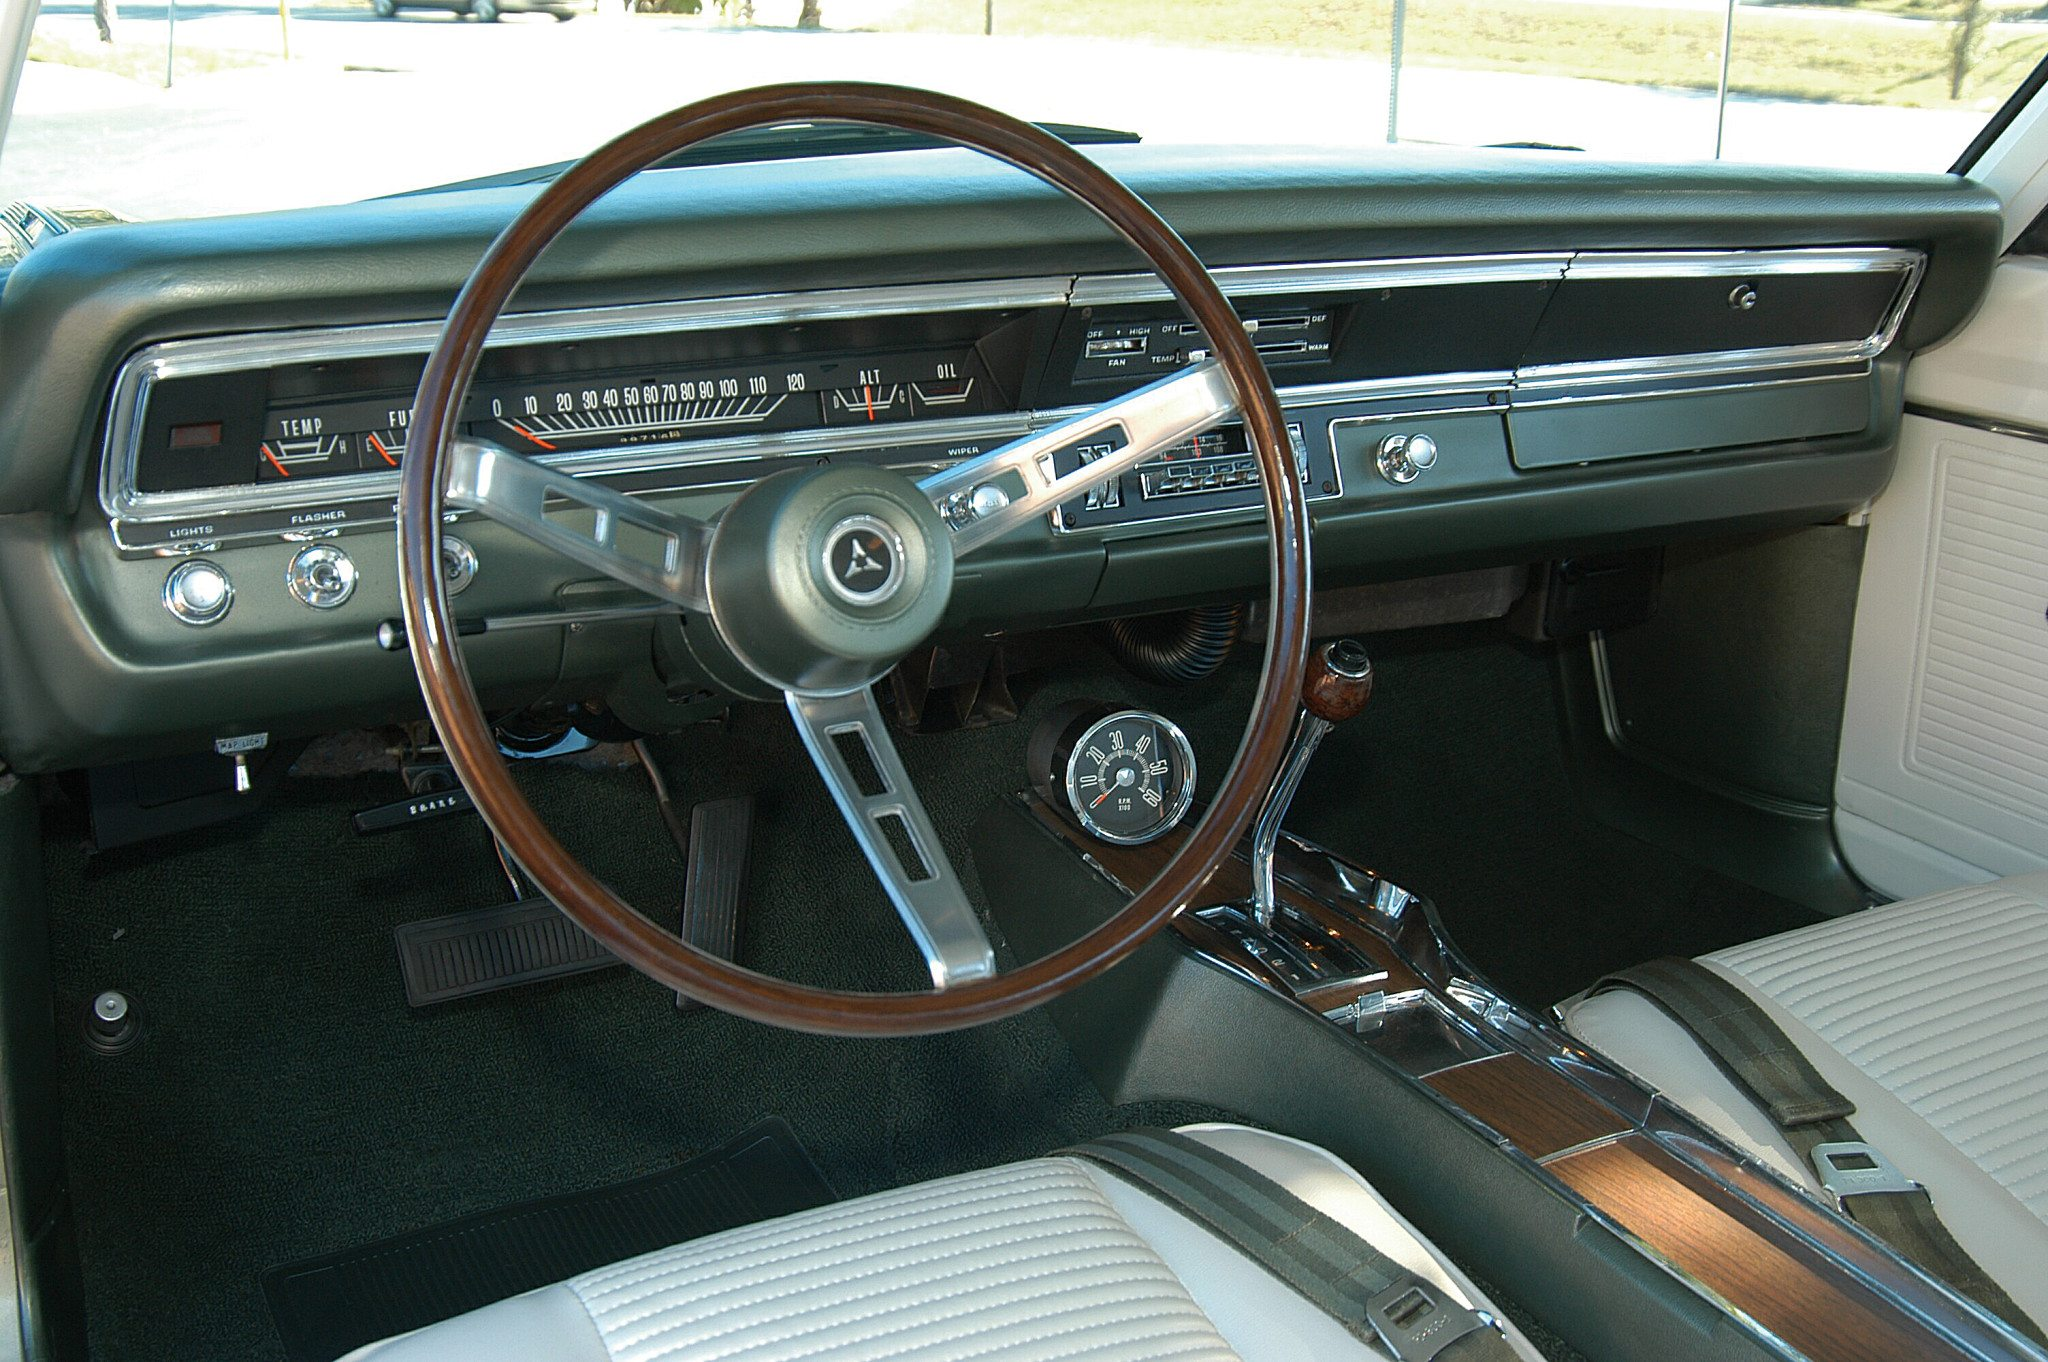 1969 Dodge Dart 340 GTS Dashboard